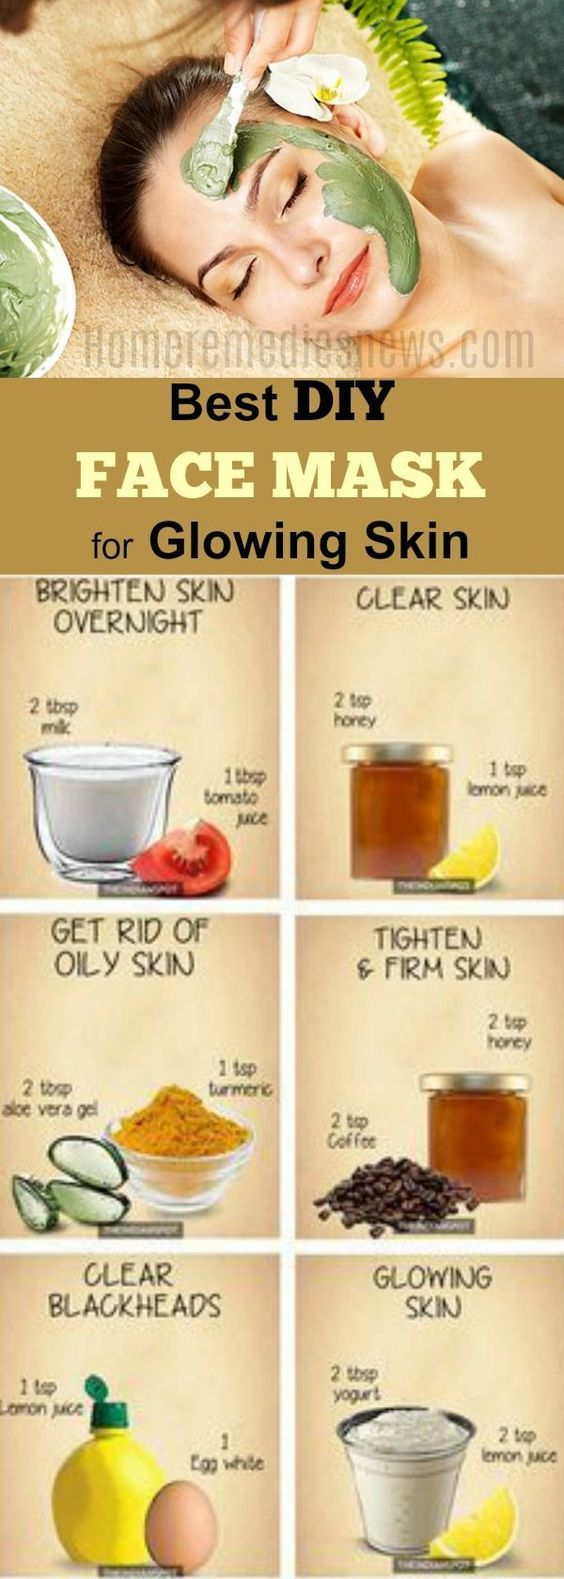 Bridal beauty, facemask, prepare skin for wedding day ...